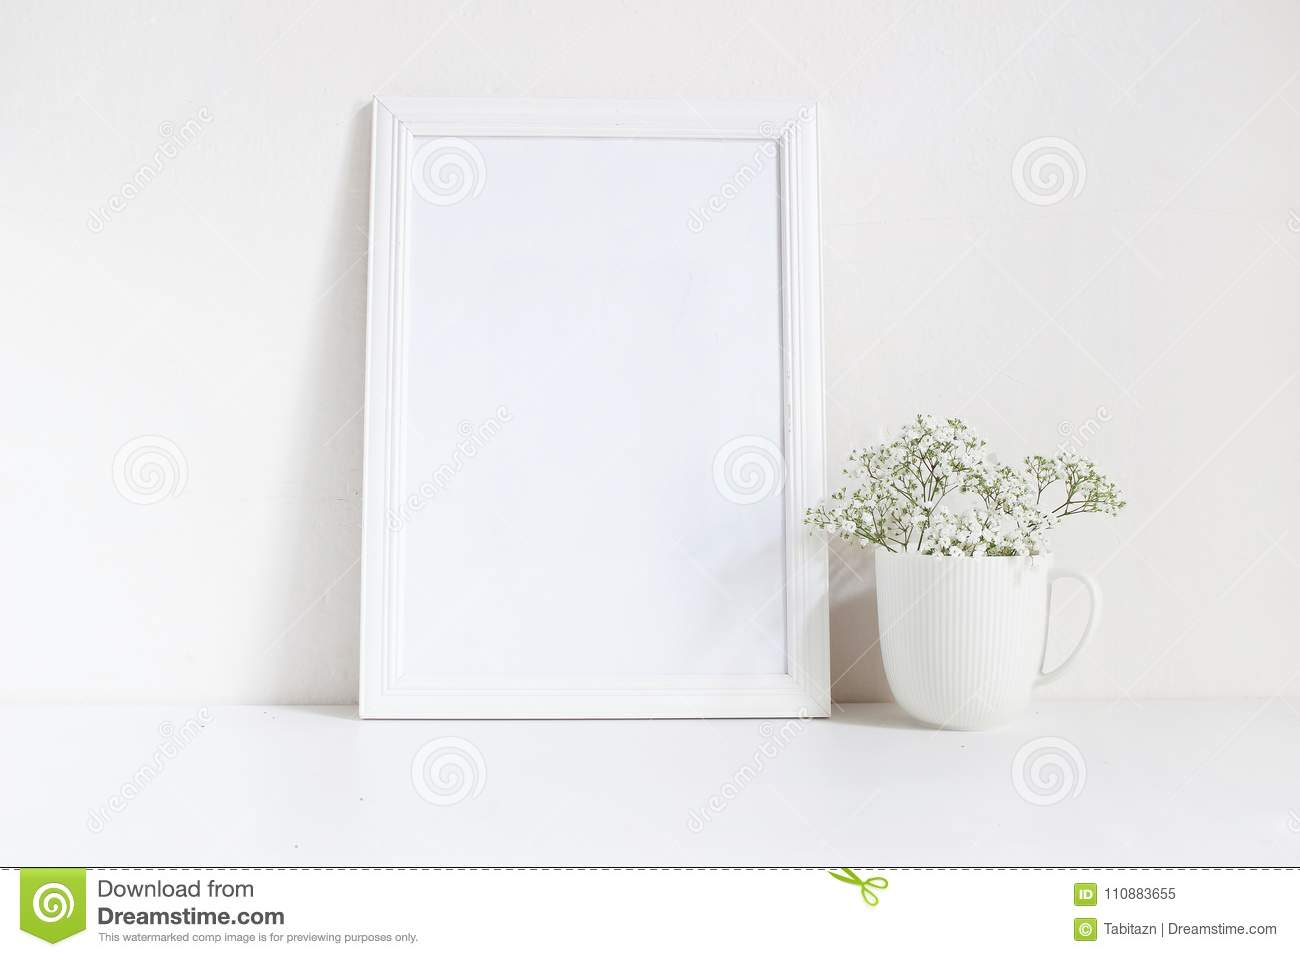 White blank wooden frame mockup with baby breath, Gypsophila flowers in porcelain mug on the table. Poster product